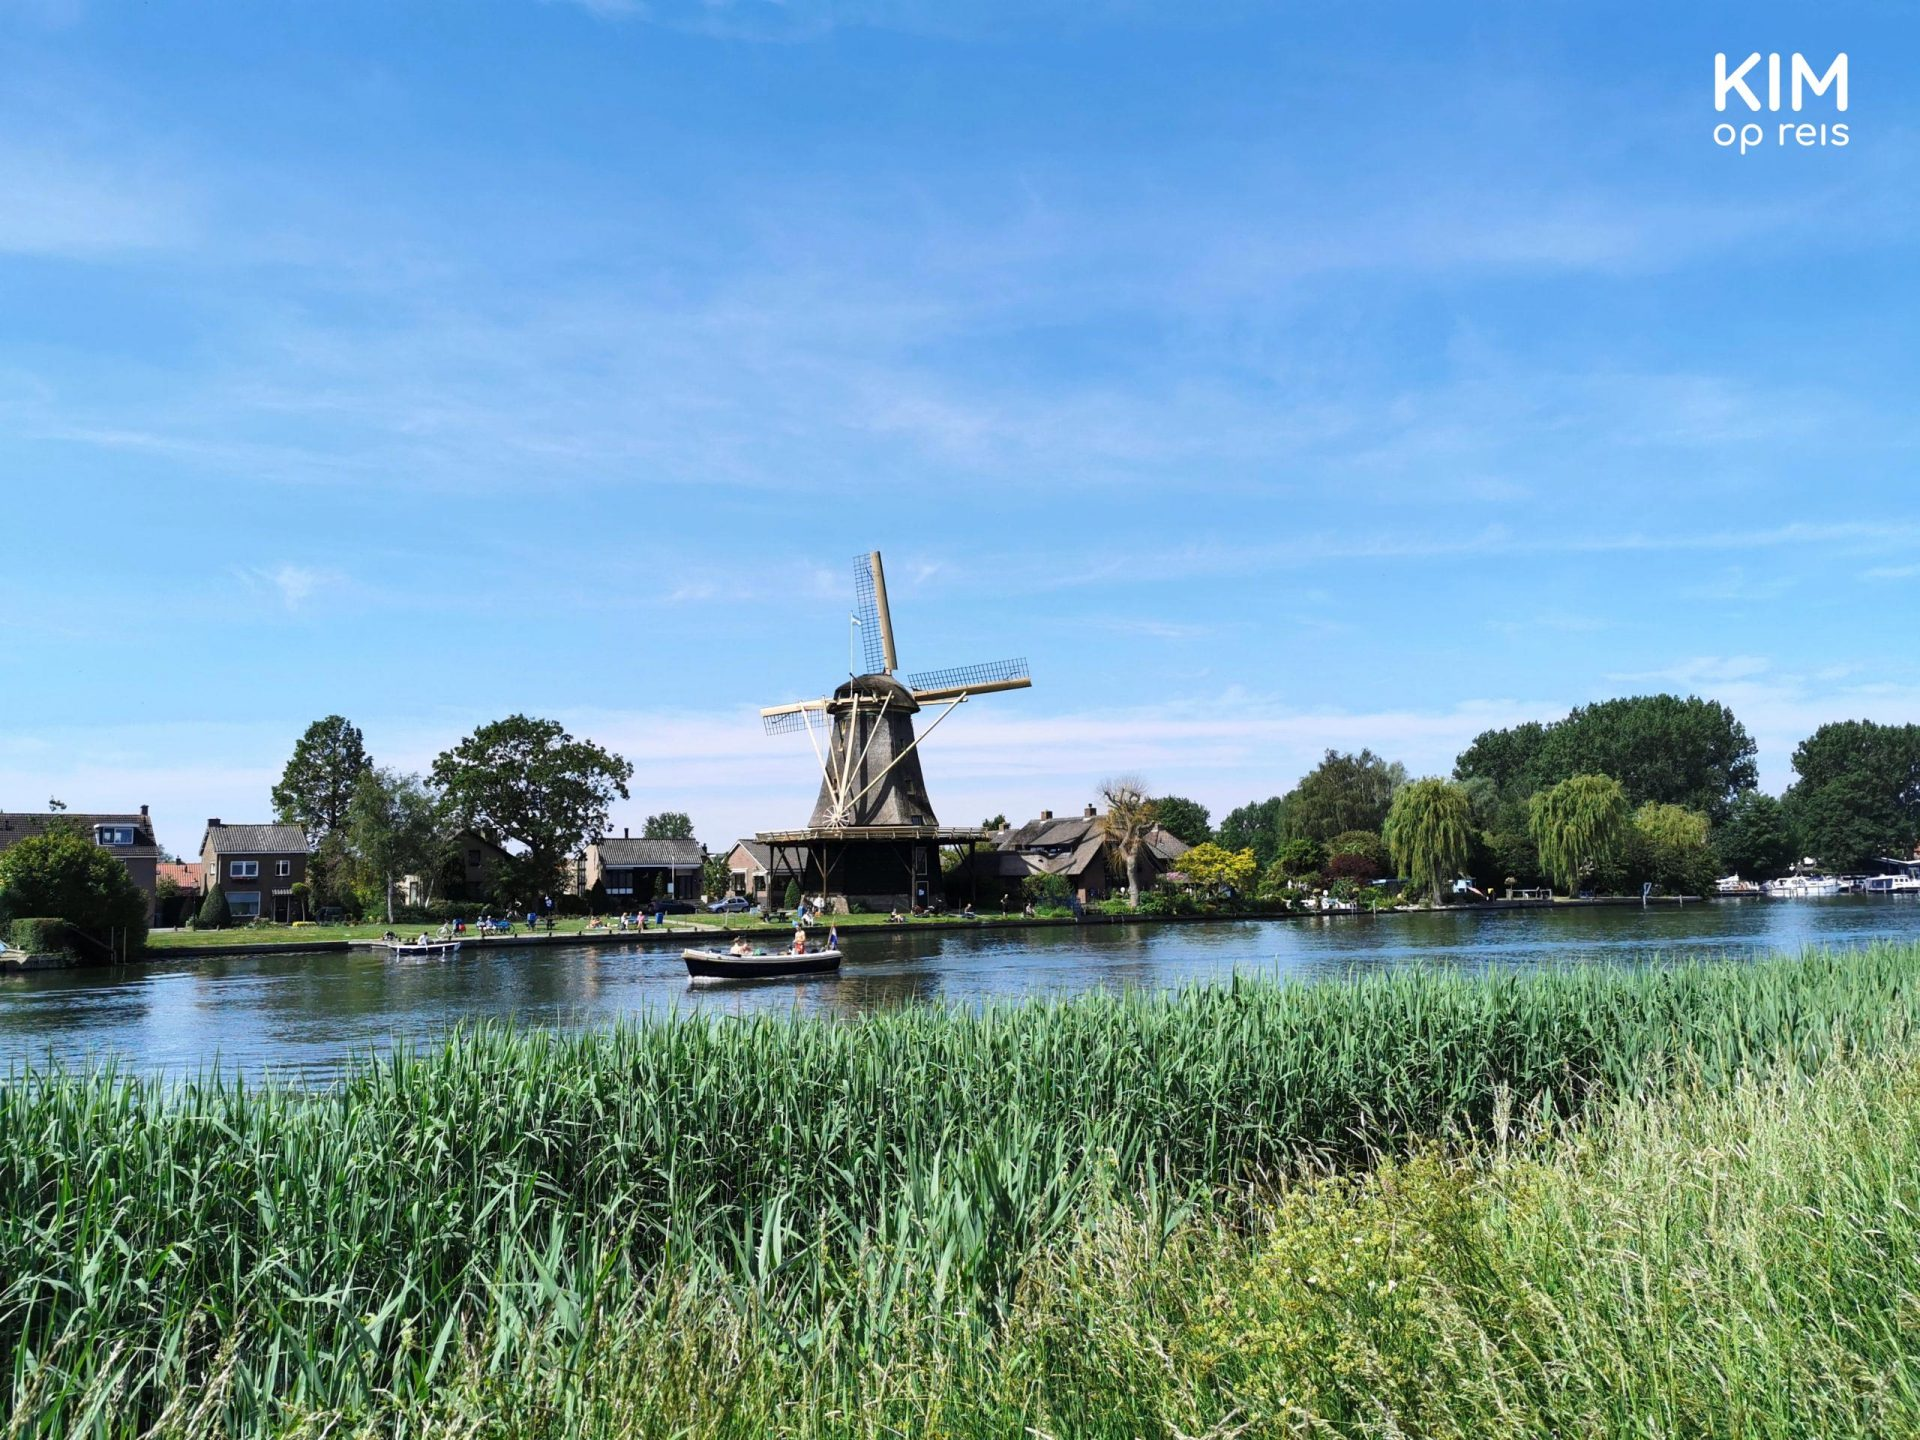 Walking along the Vecht: Mill along the river and boat on it